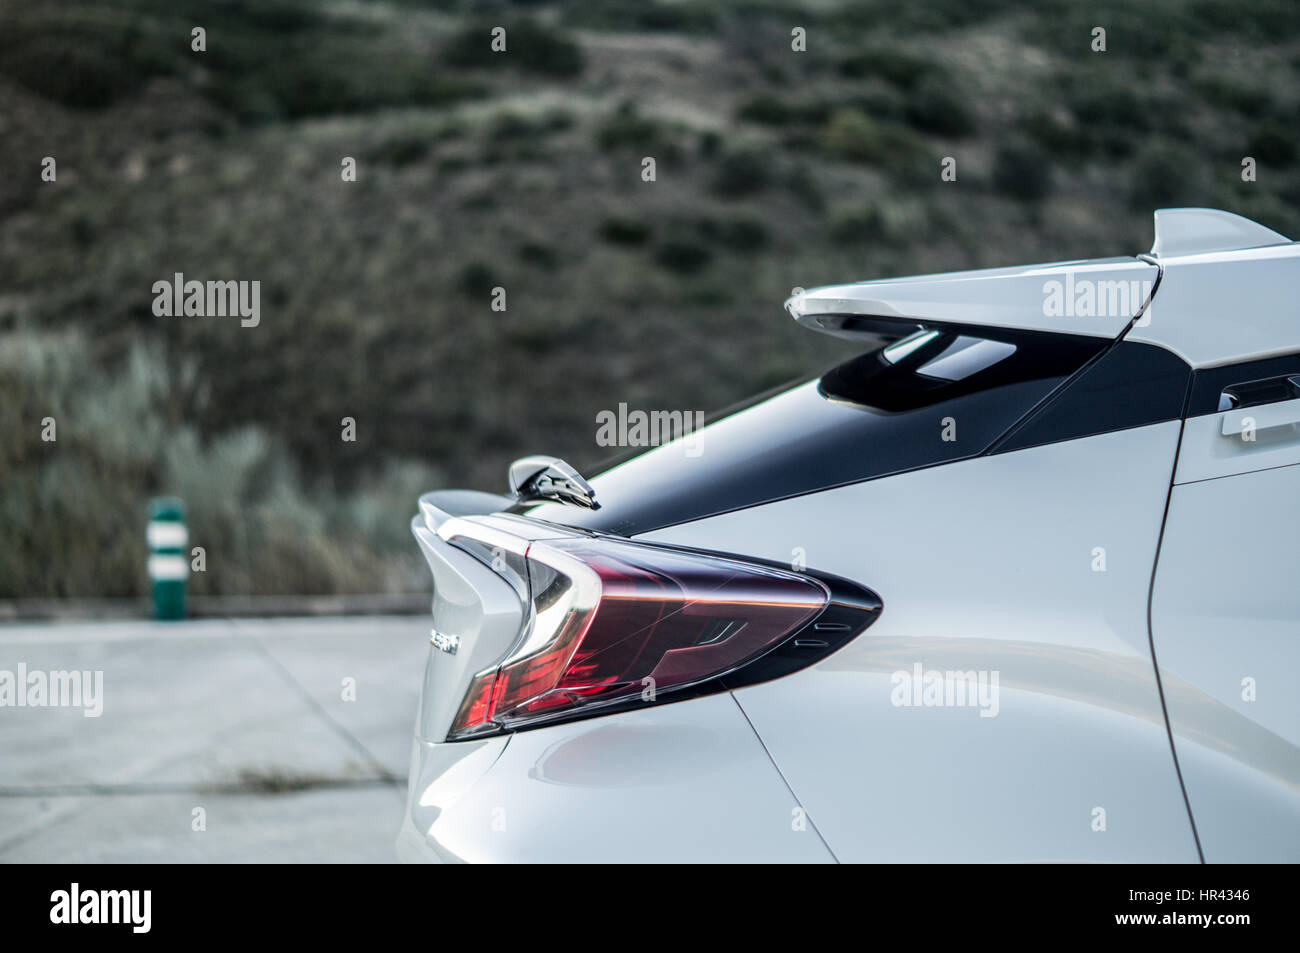 Rear wing and brake light of a white Toyota C-HR CHR on a helipad, hills and scenery in the background. - Stock Image